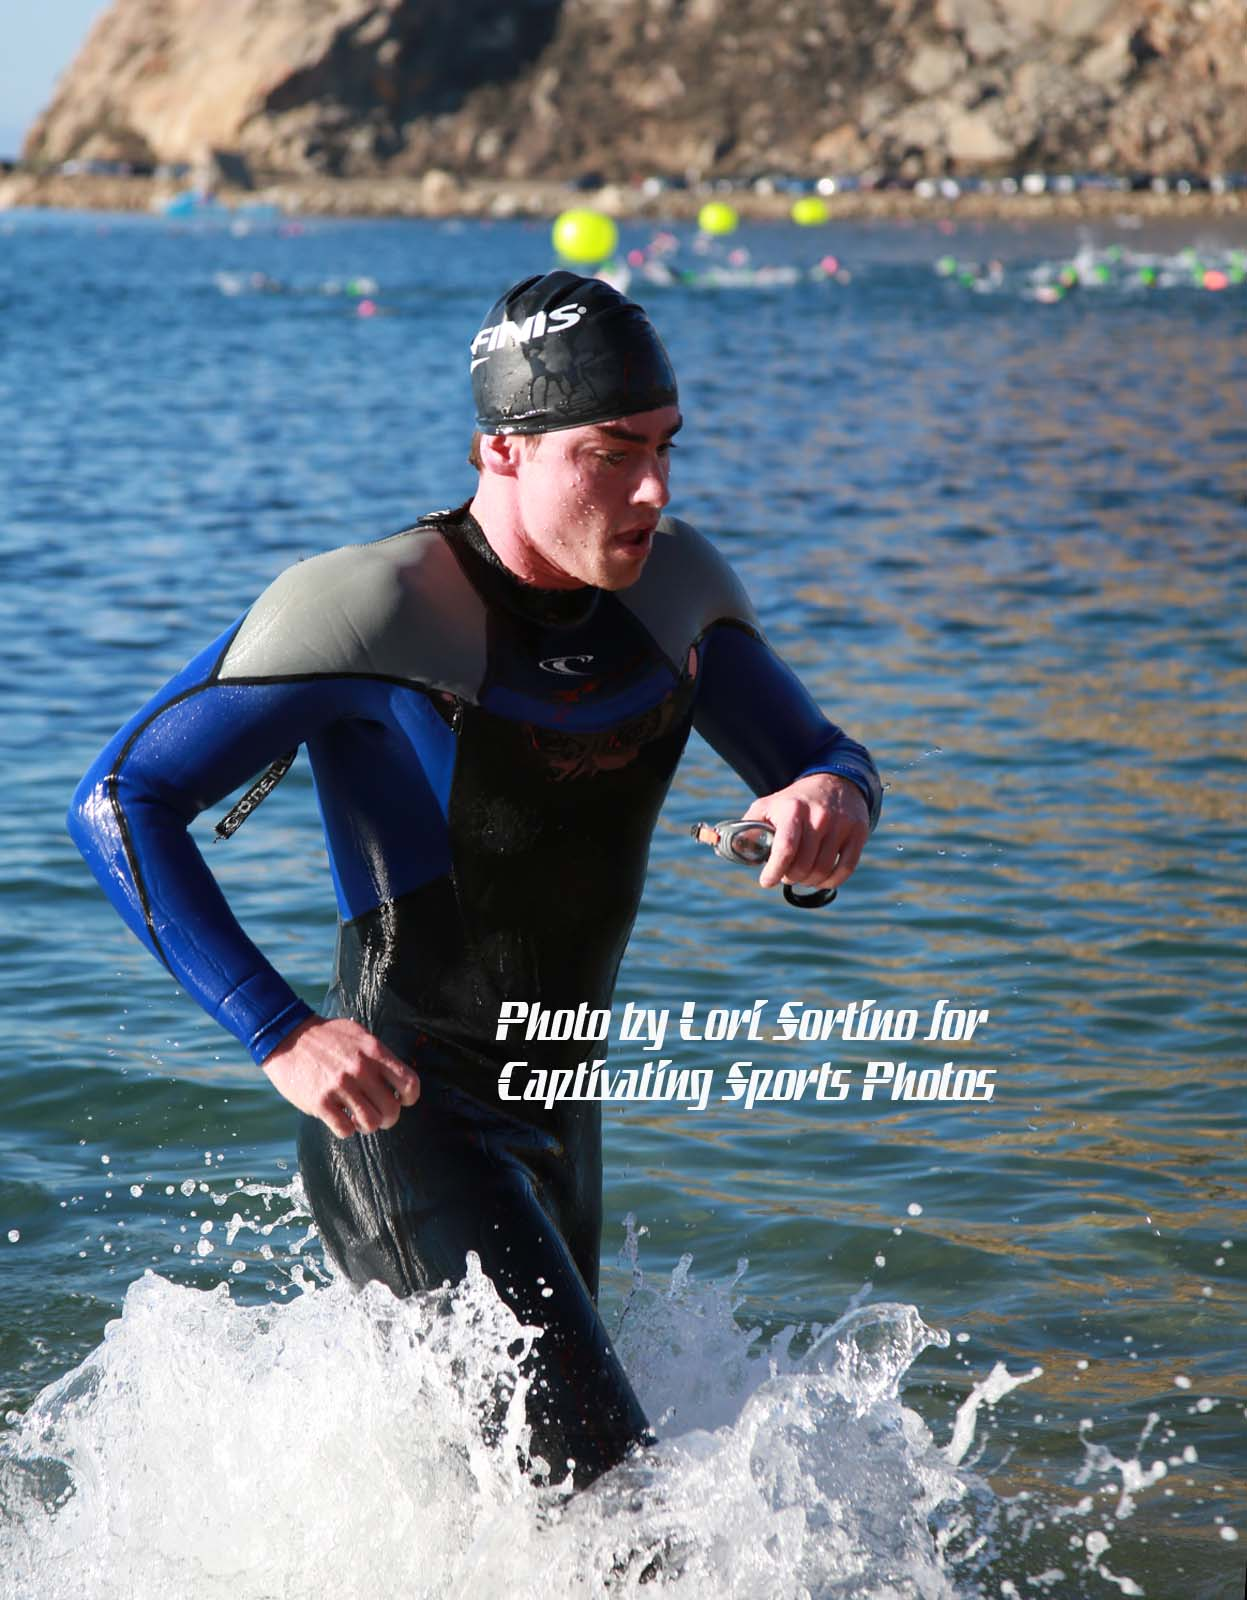 triathlete exiting water black swim cap